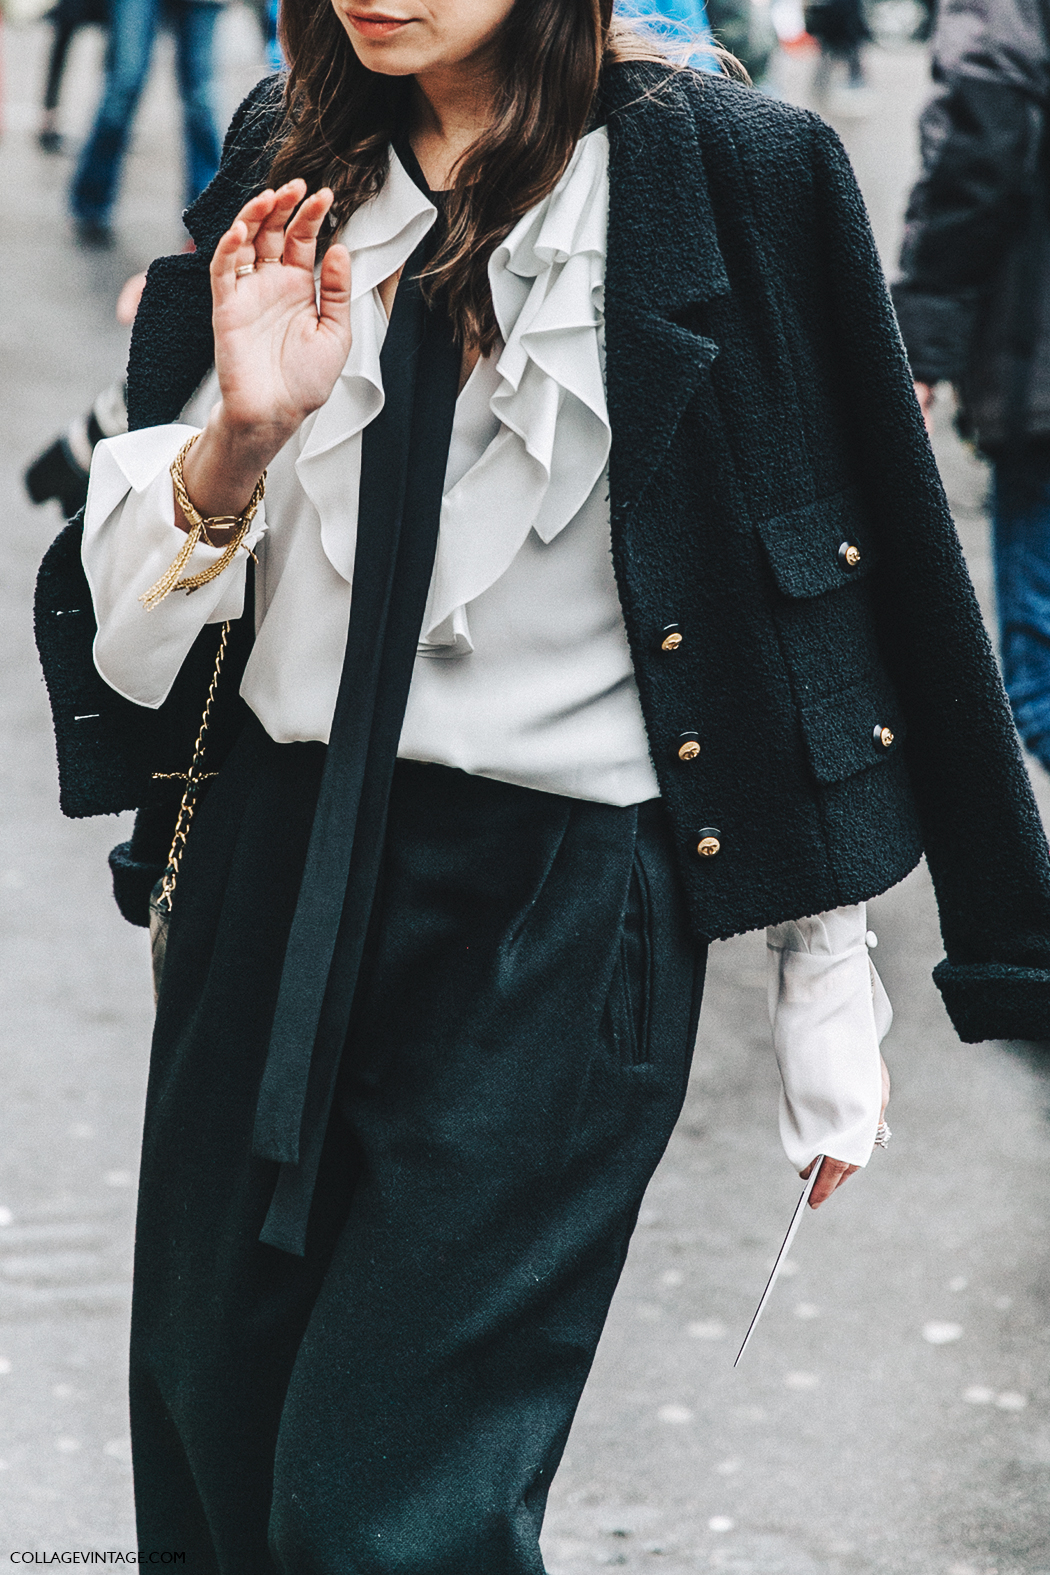 PFW-Paris_Fashion_Week_Fall_2016-Street_Style-Collage_Vintage-Stella_McCartney-Amanda_Weiner-Chanel-